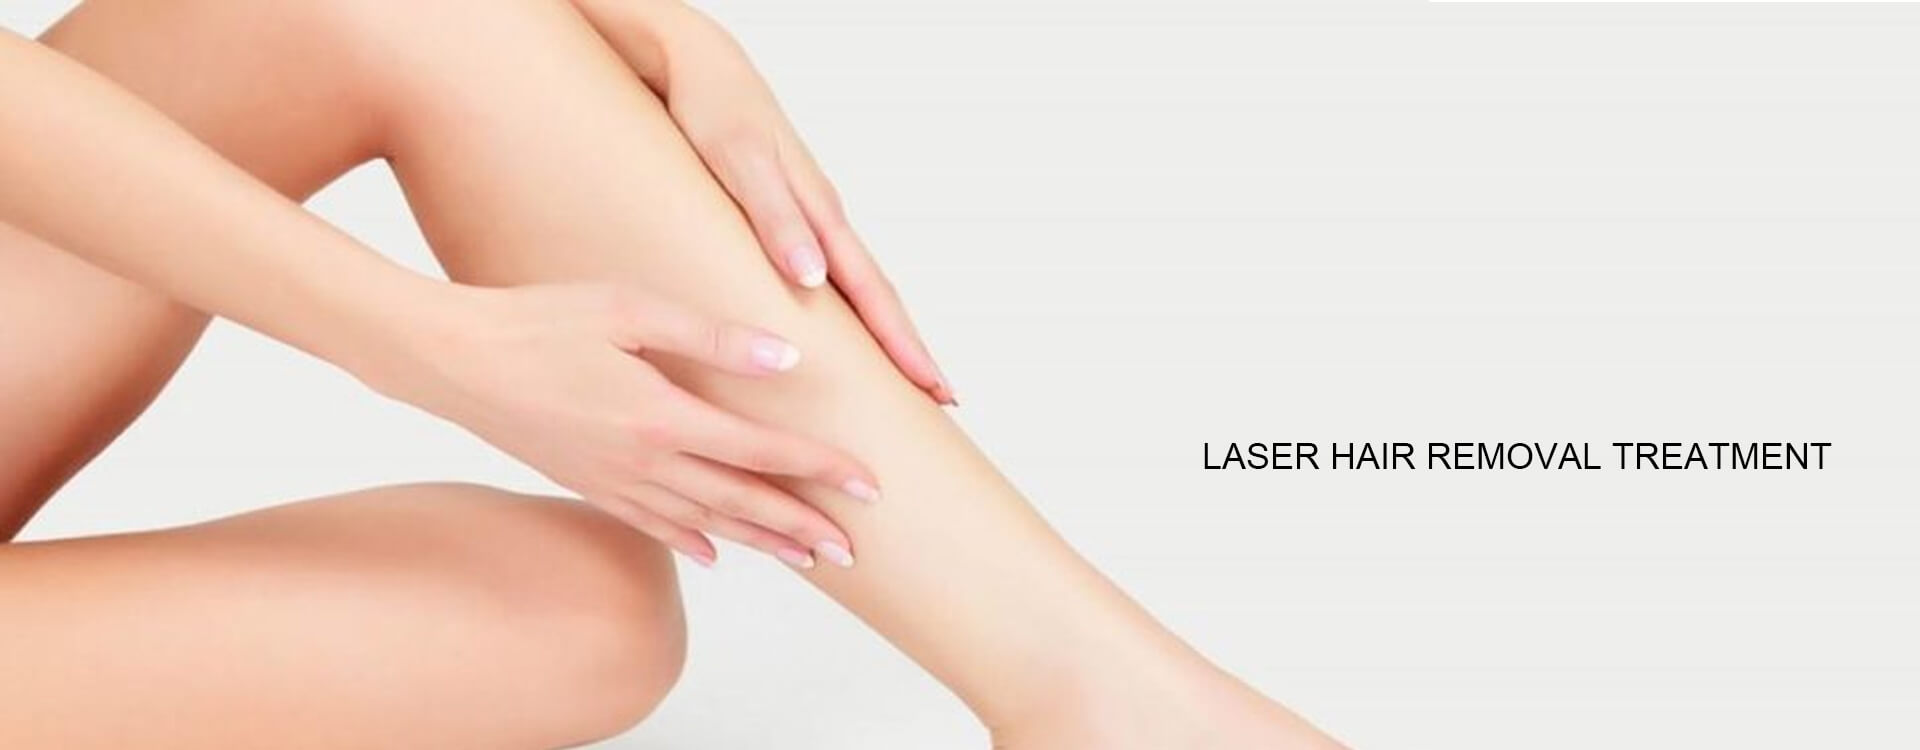 Final Points To Note Before Laser Hair Removal Treatment